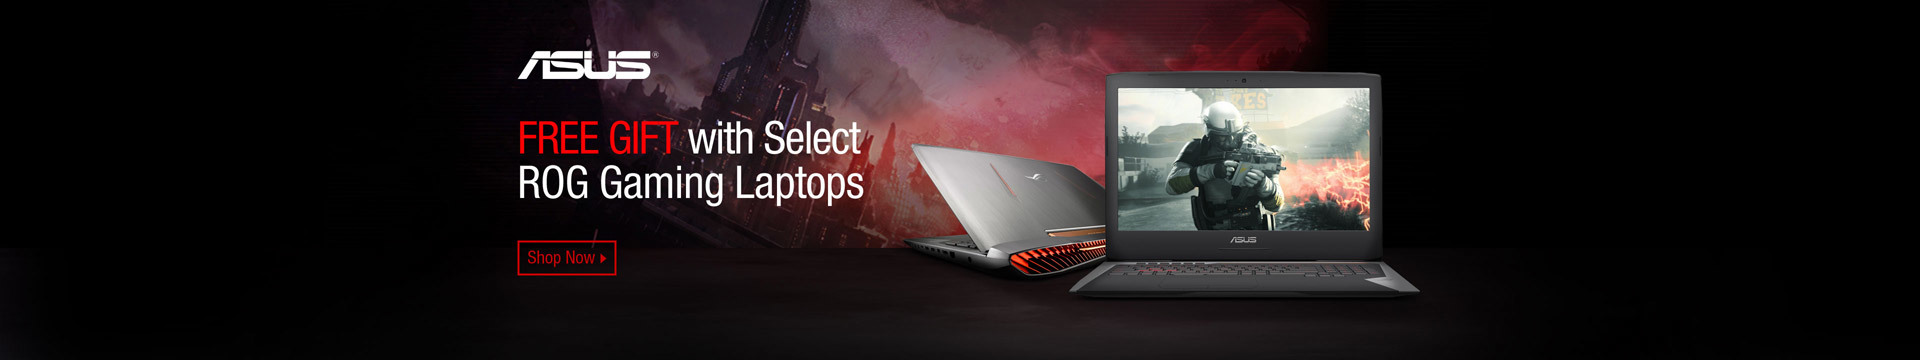 Free Gift with Select ROG Gaming Laptops